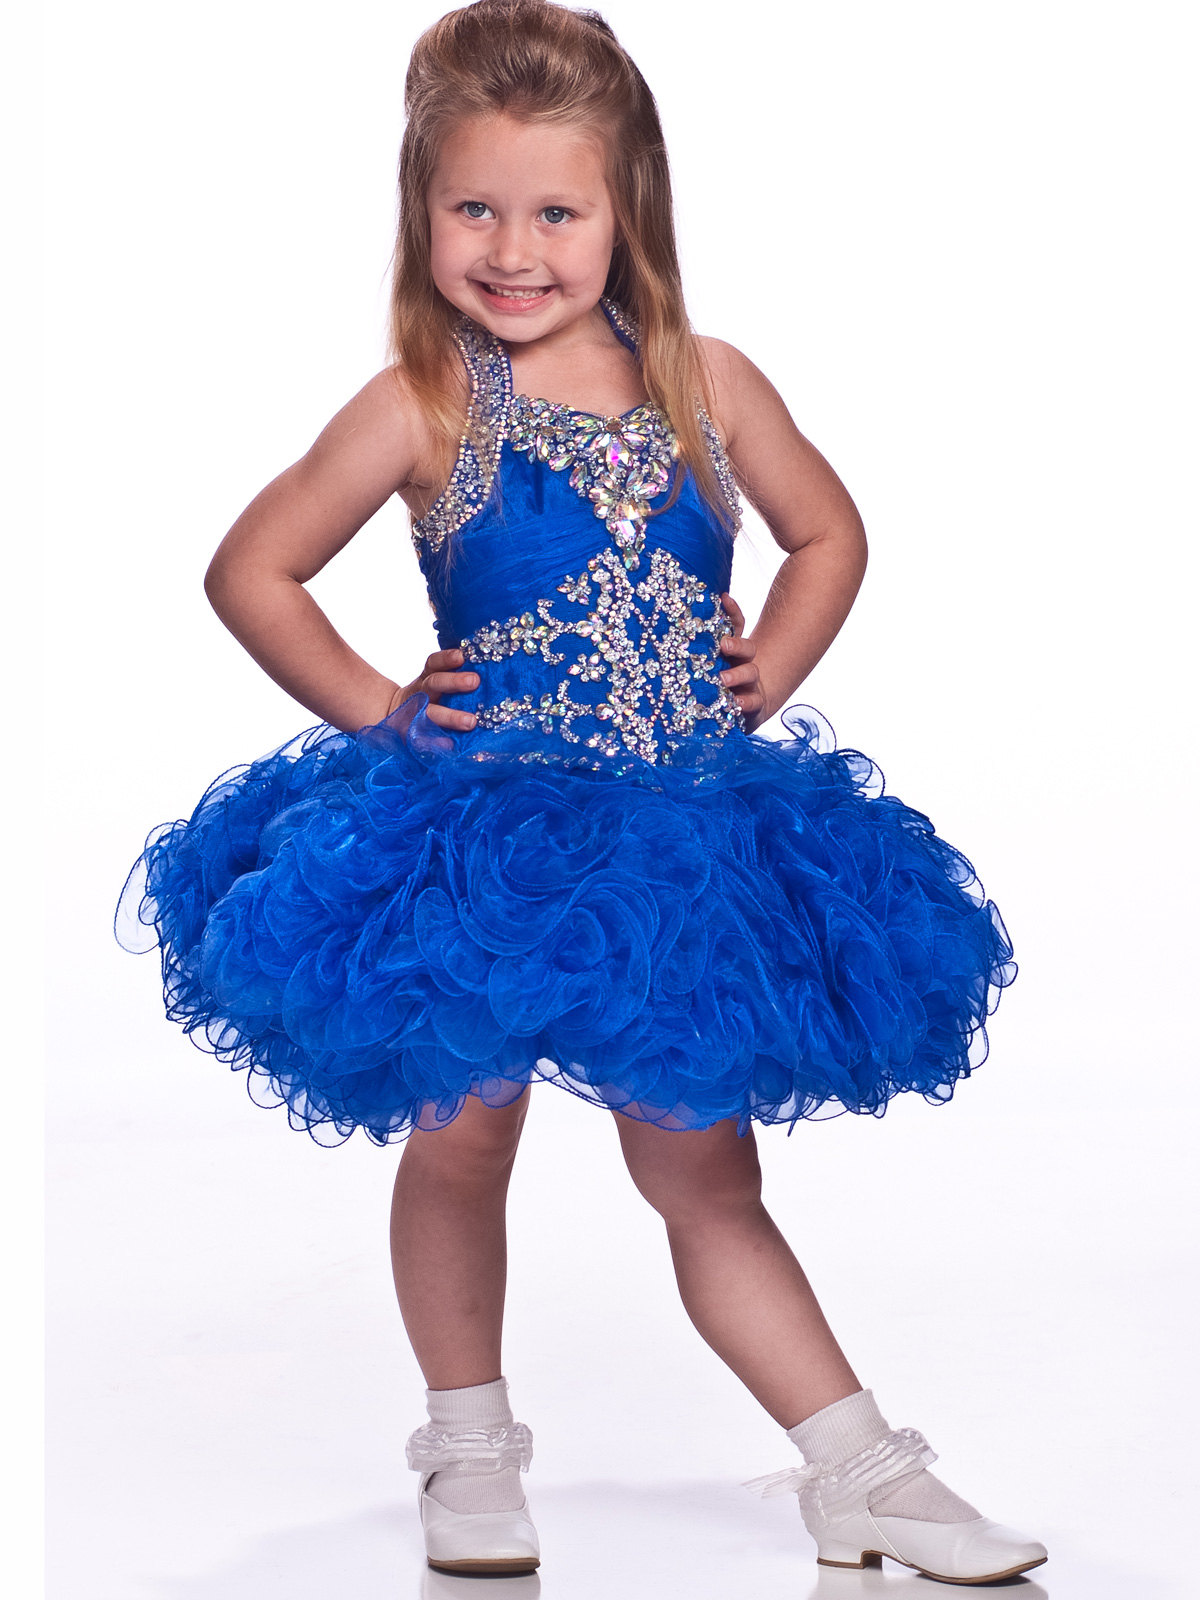 Halter Ruffled Skirt Girls Short Pageant Dress By Unique Fashion ...